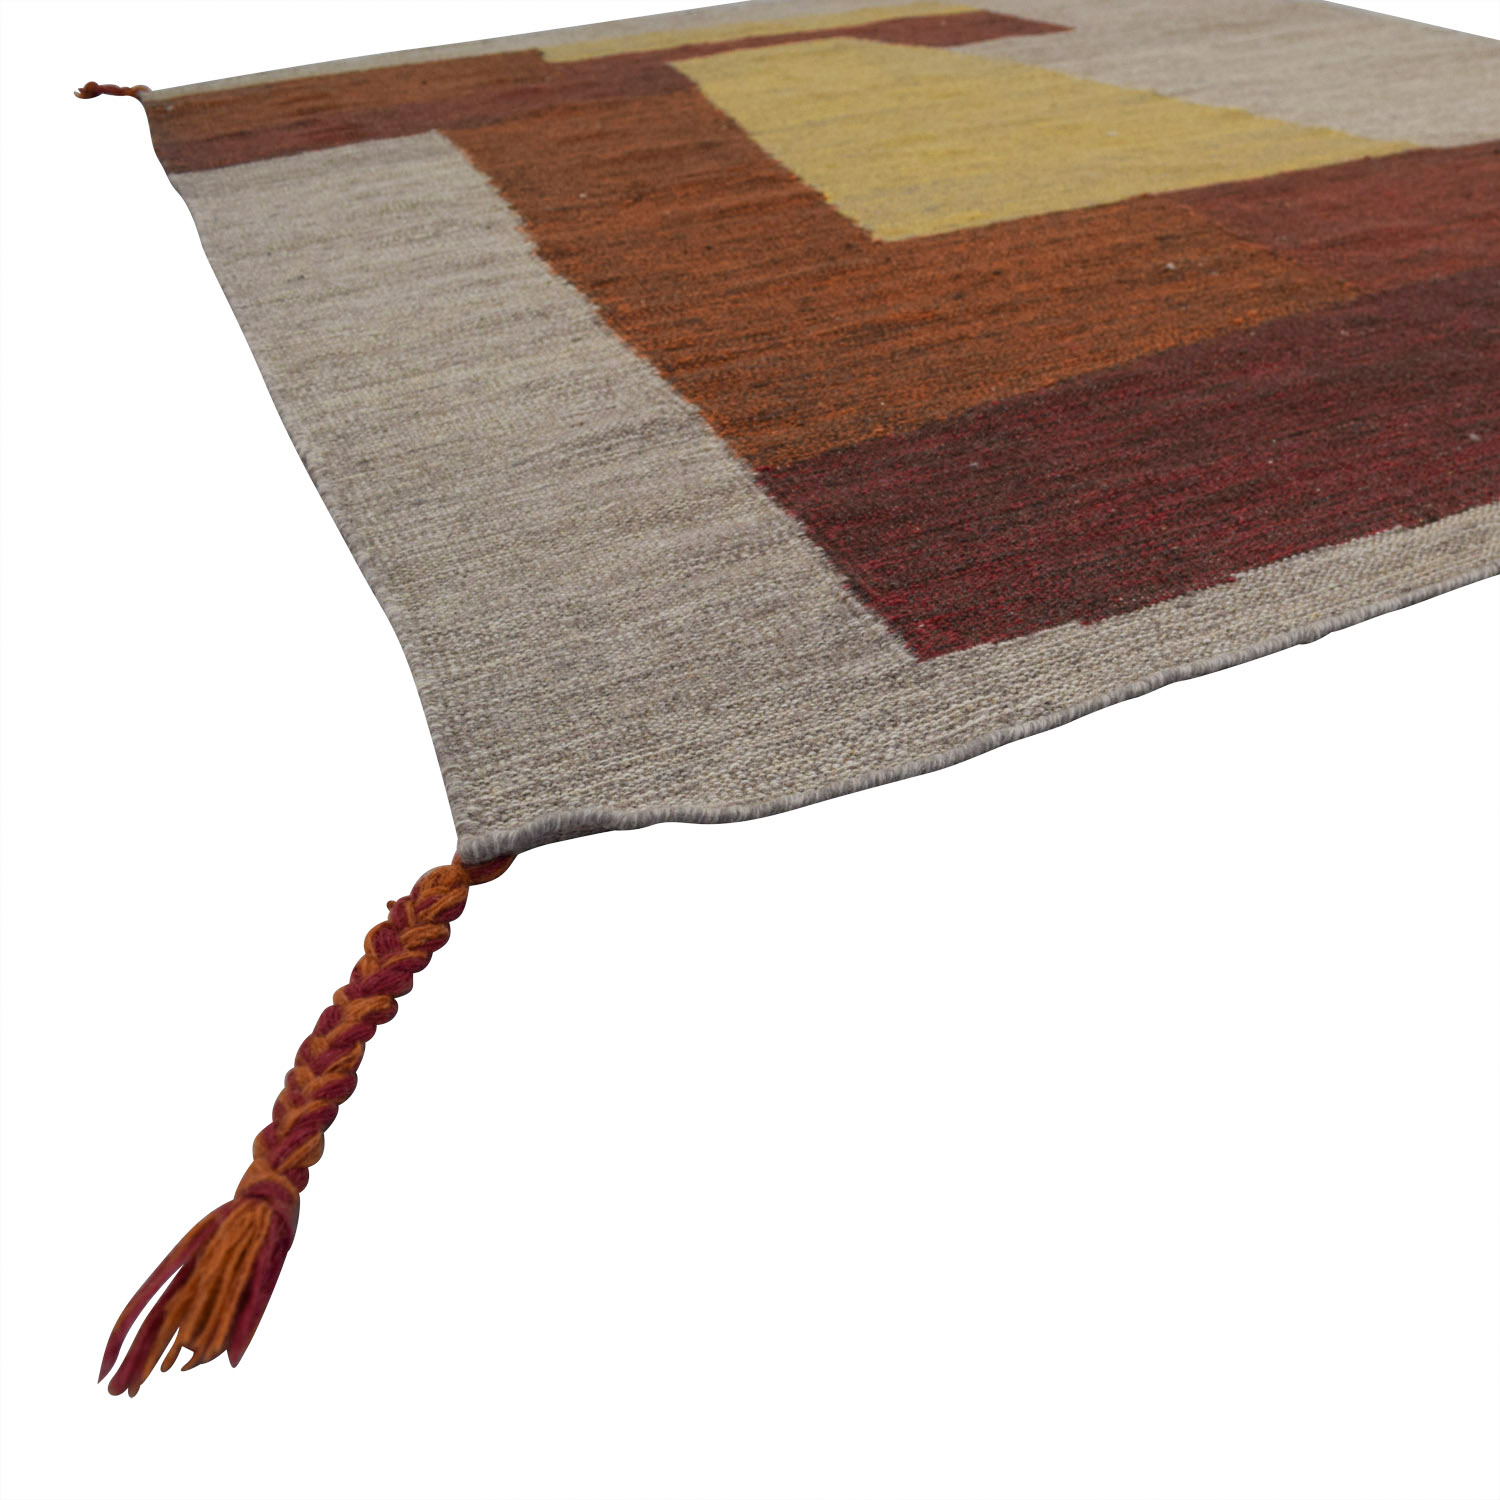 Obeetee Obeetee Color Block Wool Rug nyc